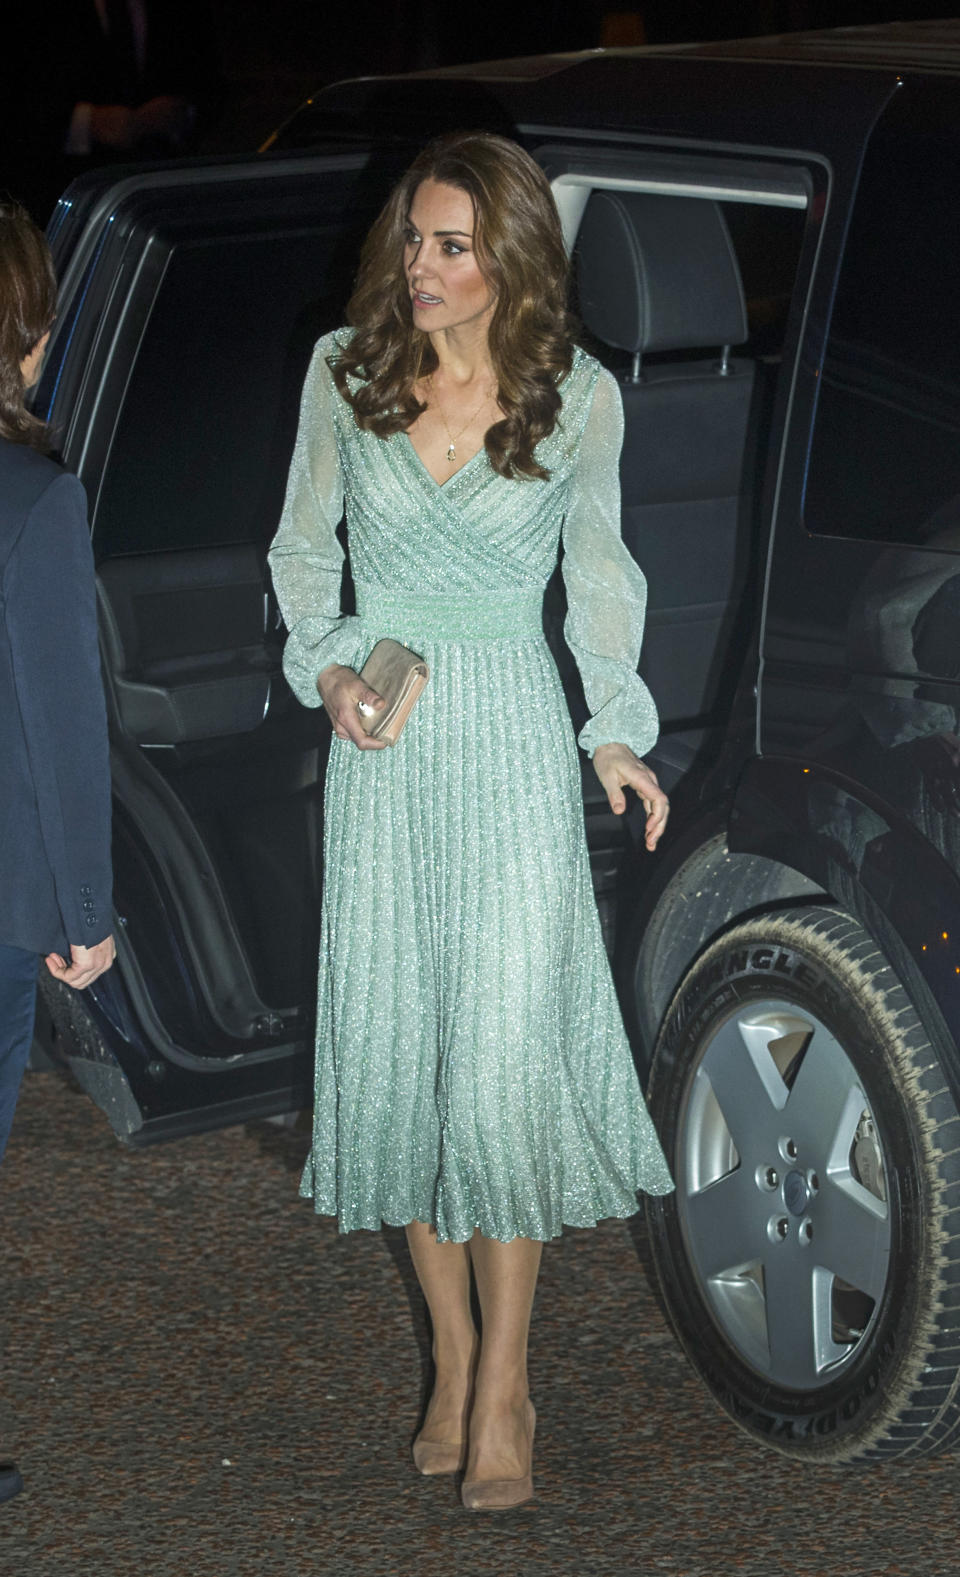 At Belfast's Empire Music Hall, Kate looked flawless in a mint green lamé dress by Missoni, with her Gianvito Rossi pumps in the praline colourway and her nude Mulberry Bayswater clutch bag. She accessorised with new jewellery from Kiki McDonough's 'Candy' collection. [Photo: PA]